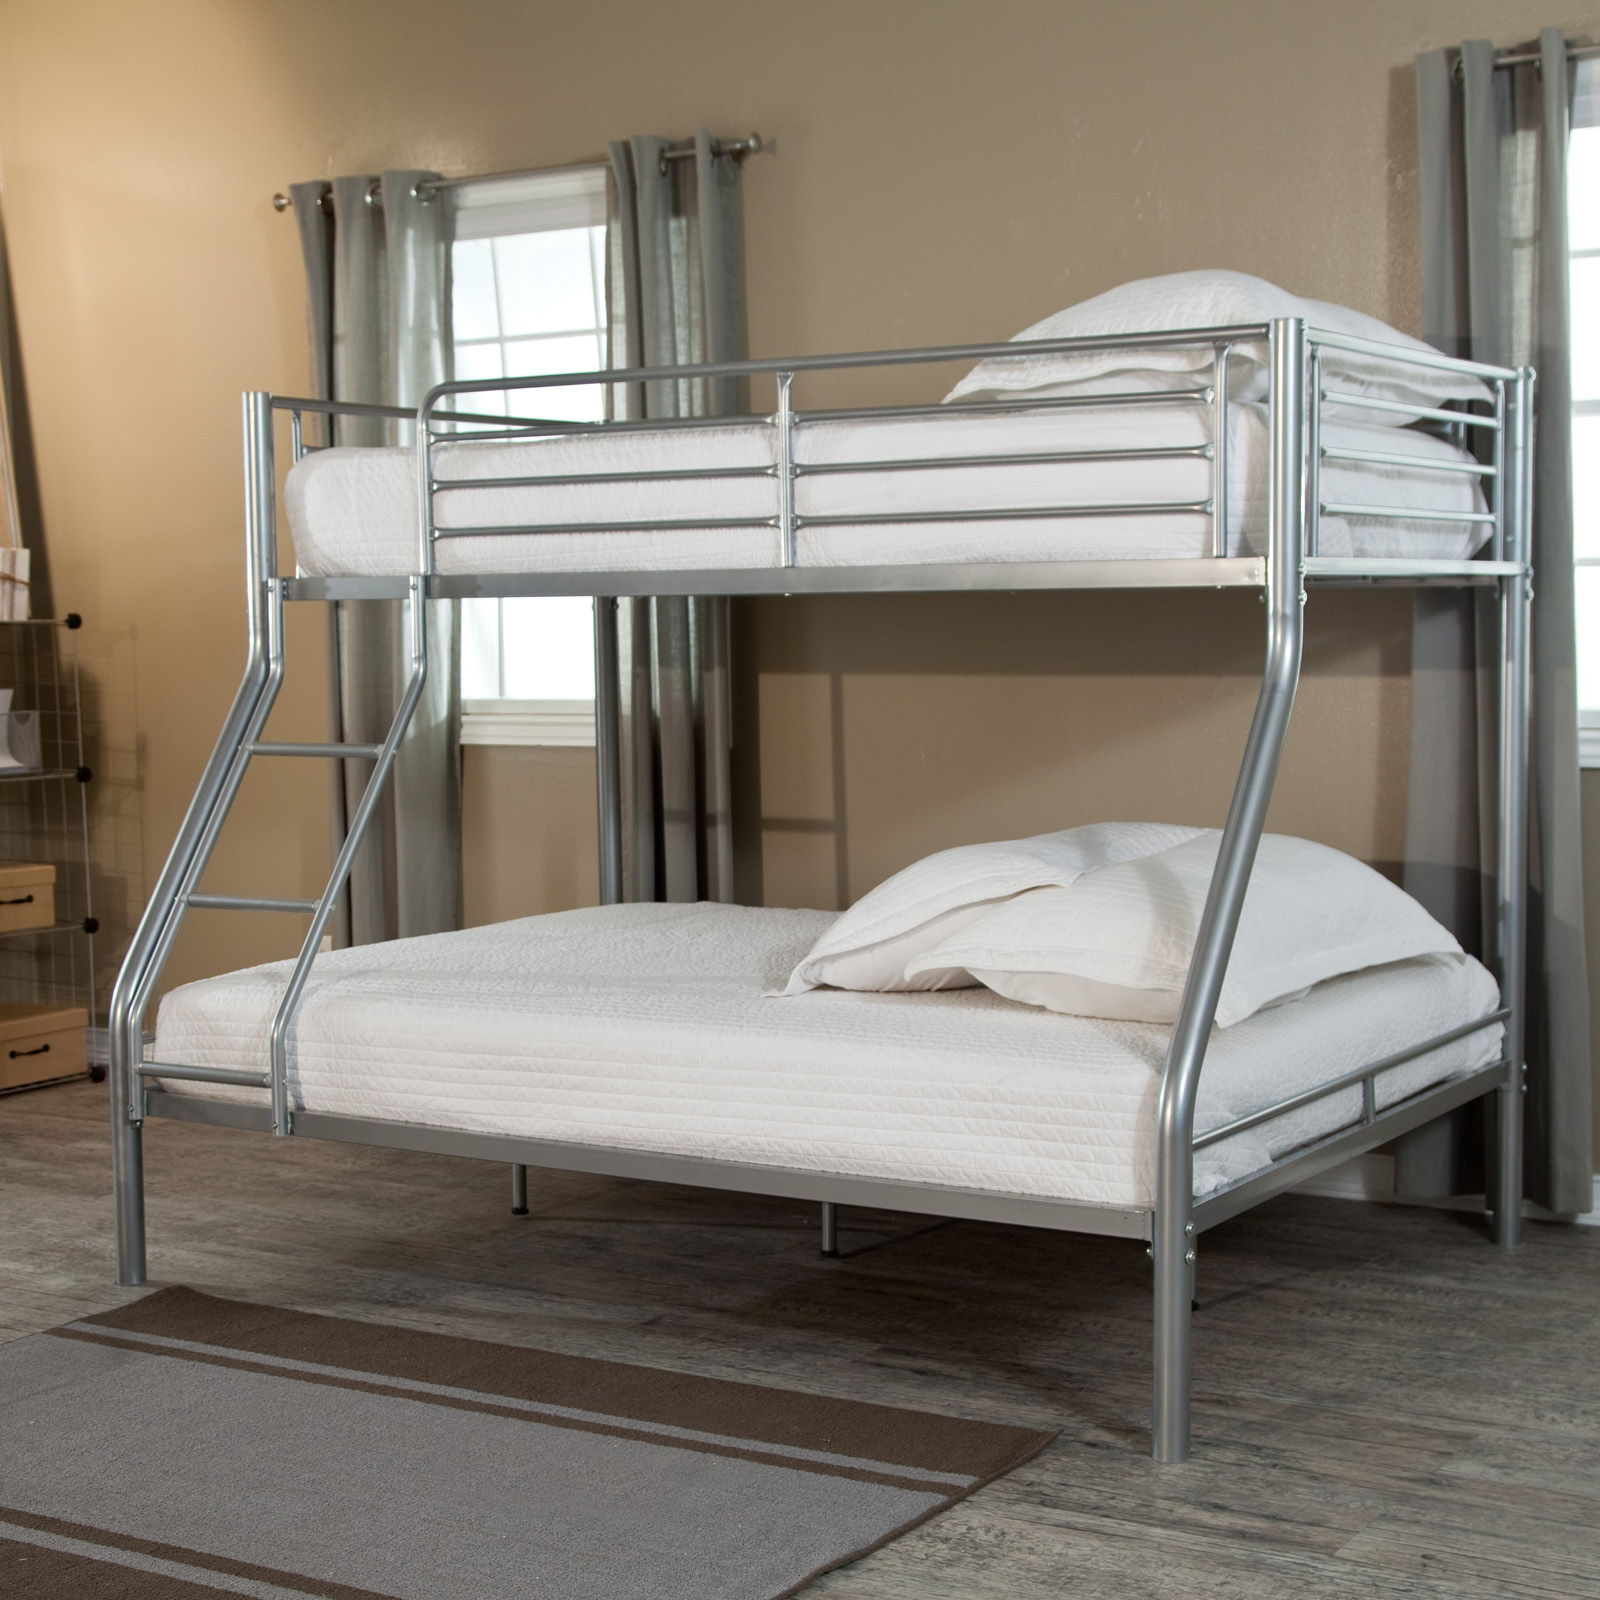 Bunk beds for adults full - Duro Wesley Twin Over Full Bunk Bed Silver Bunk Beds Loft Beds At Hayneedle